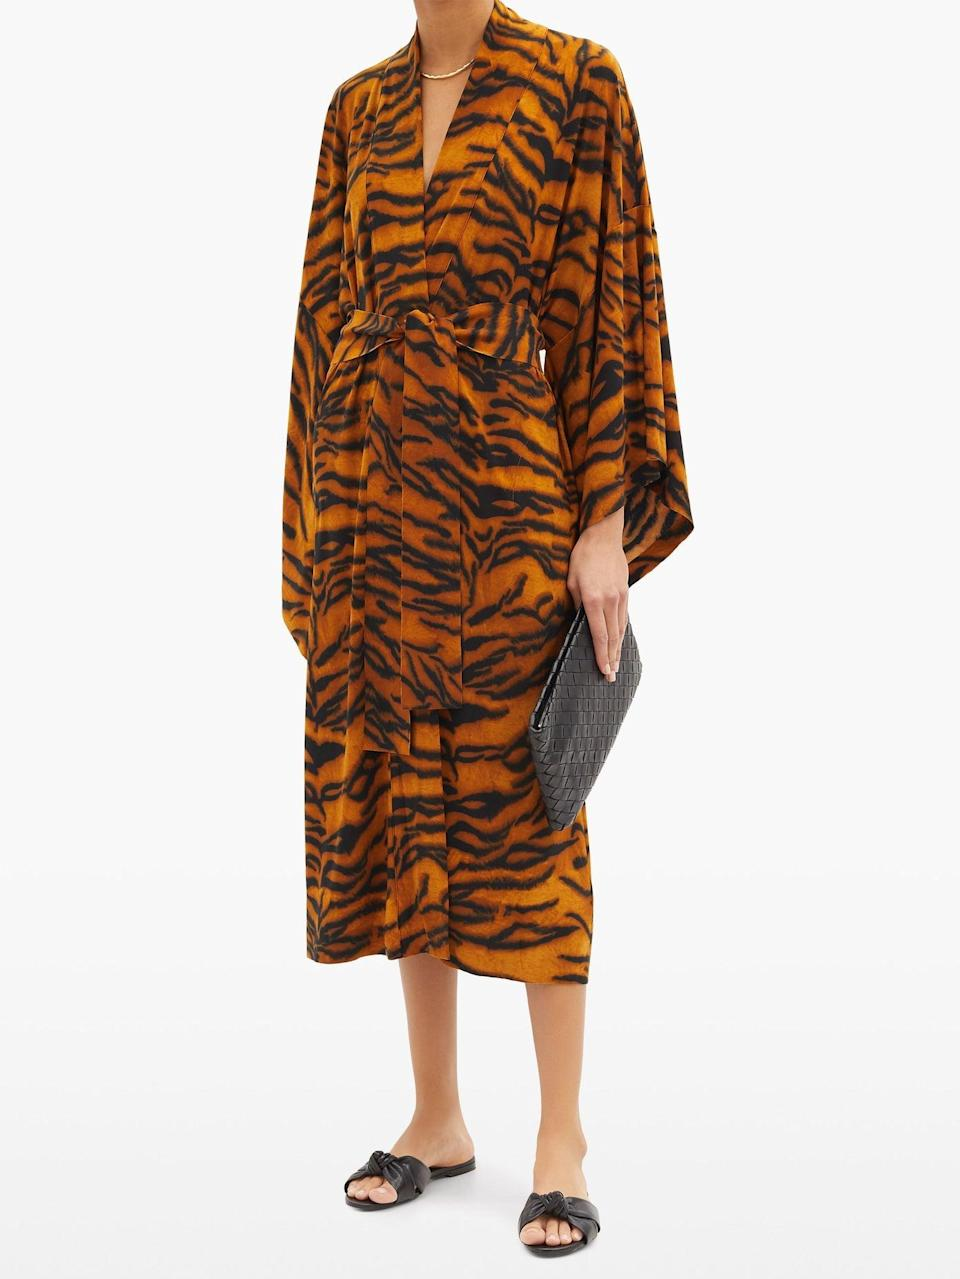 """<br><br><strong>Norma Kamali</strong> Tiger-Print Jersey Robe, $, available at <a href=""""https://go.skimresources.com/?id=30283X879131&url=https%3A%2F%2Fwww.matchesfashion.com%2Fproducts%2FNorma-Kamali-Tiger-print-jersey-robe-1398360"""" rel=""""nofollow noopener"""" target=""""_blank"""" data-ylk=""""slk:MatchesFashion"""" class=""""link rapid-noclick-resp"""">MatchesFashion</a>"""